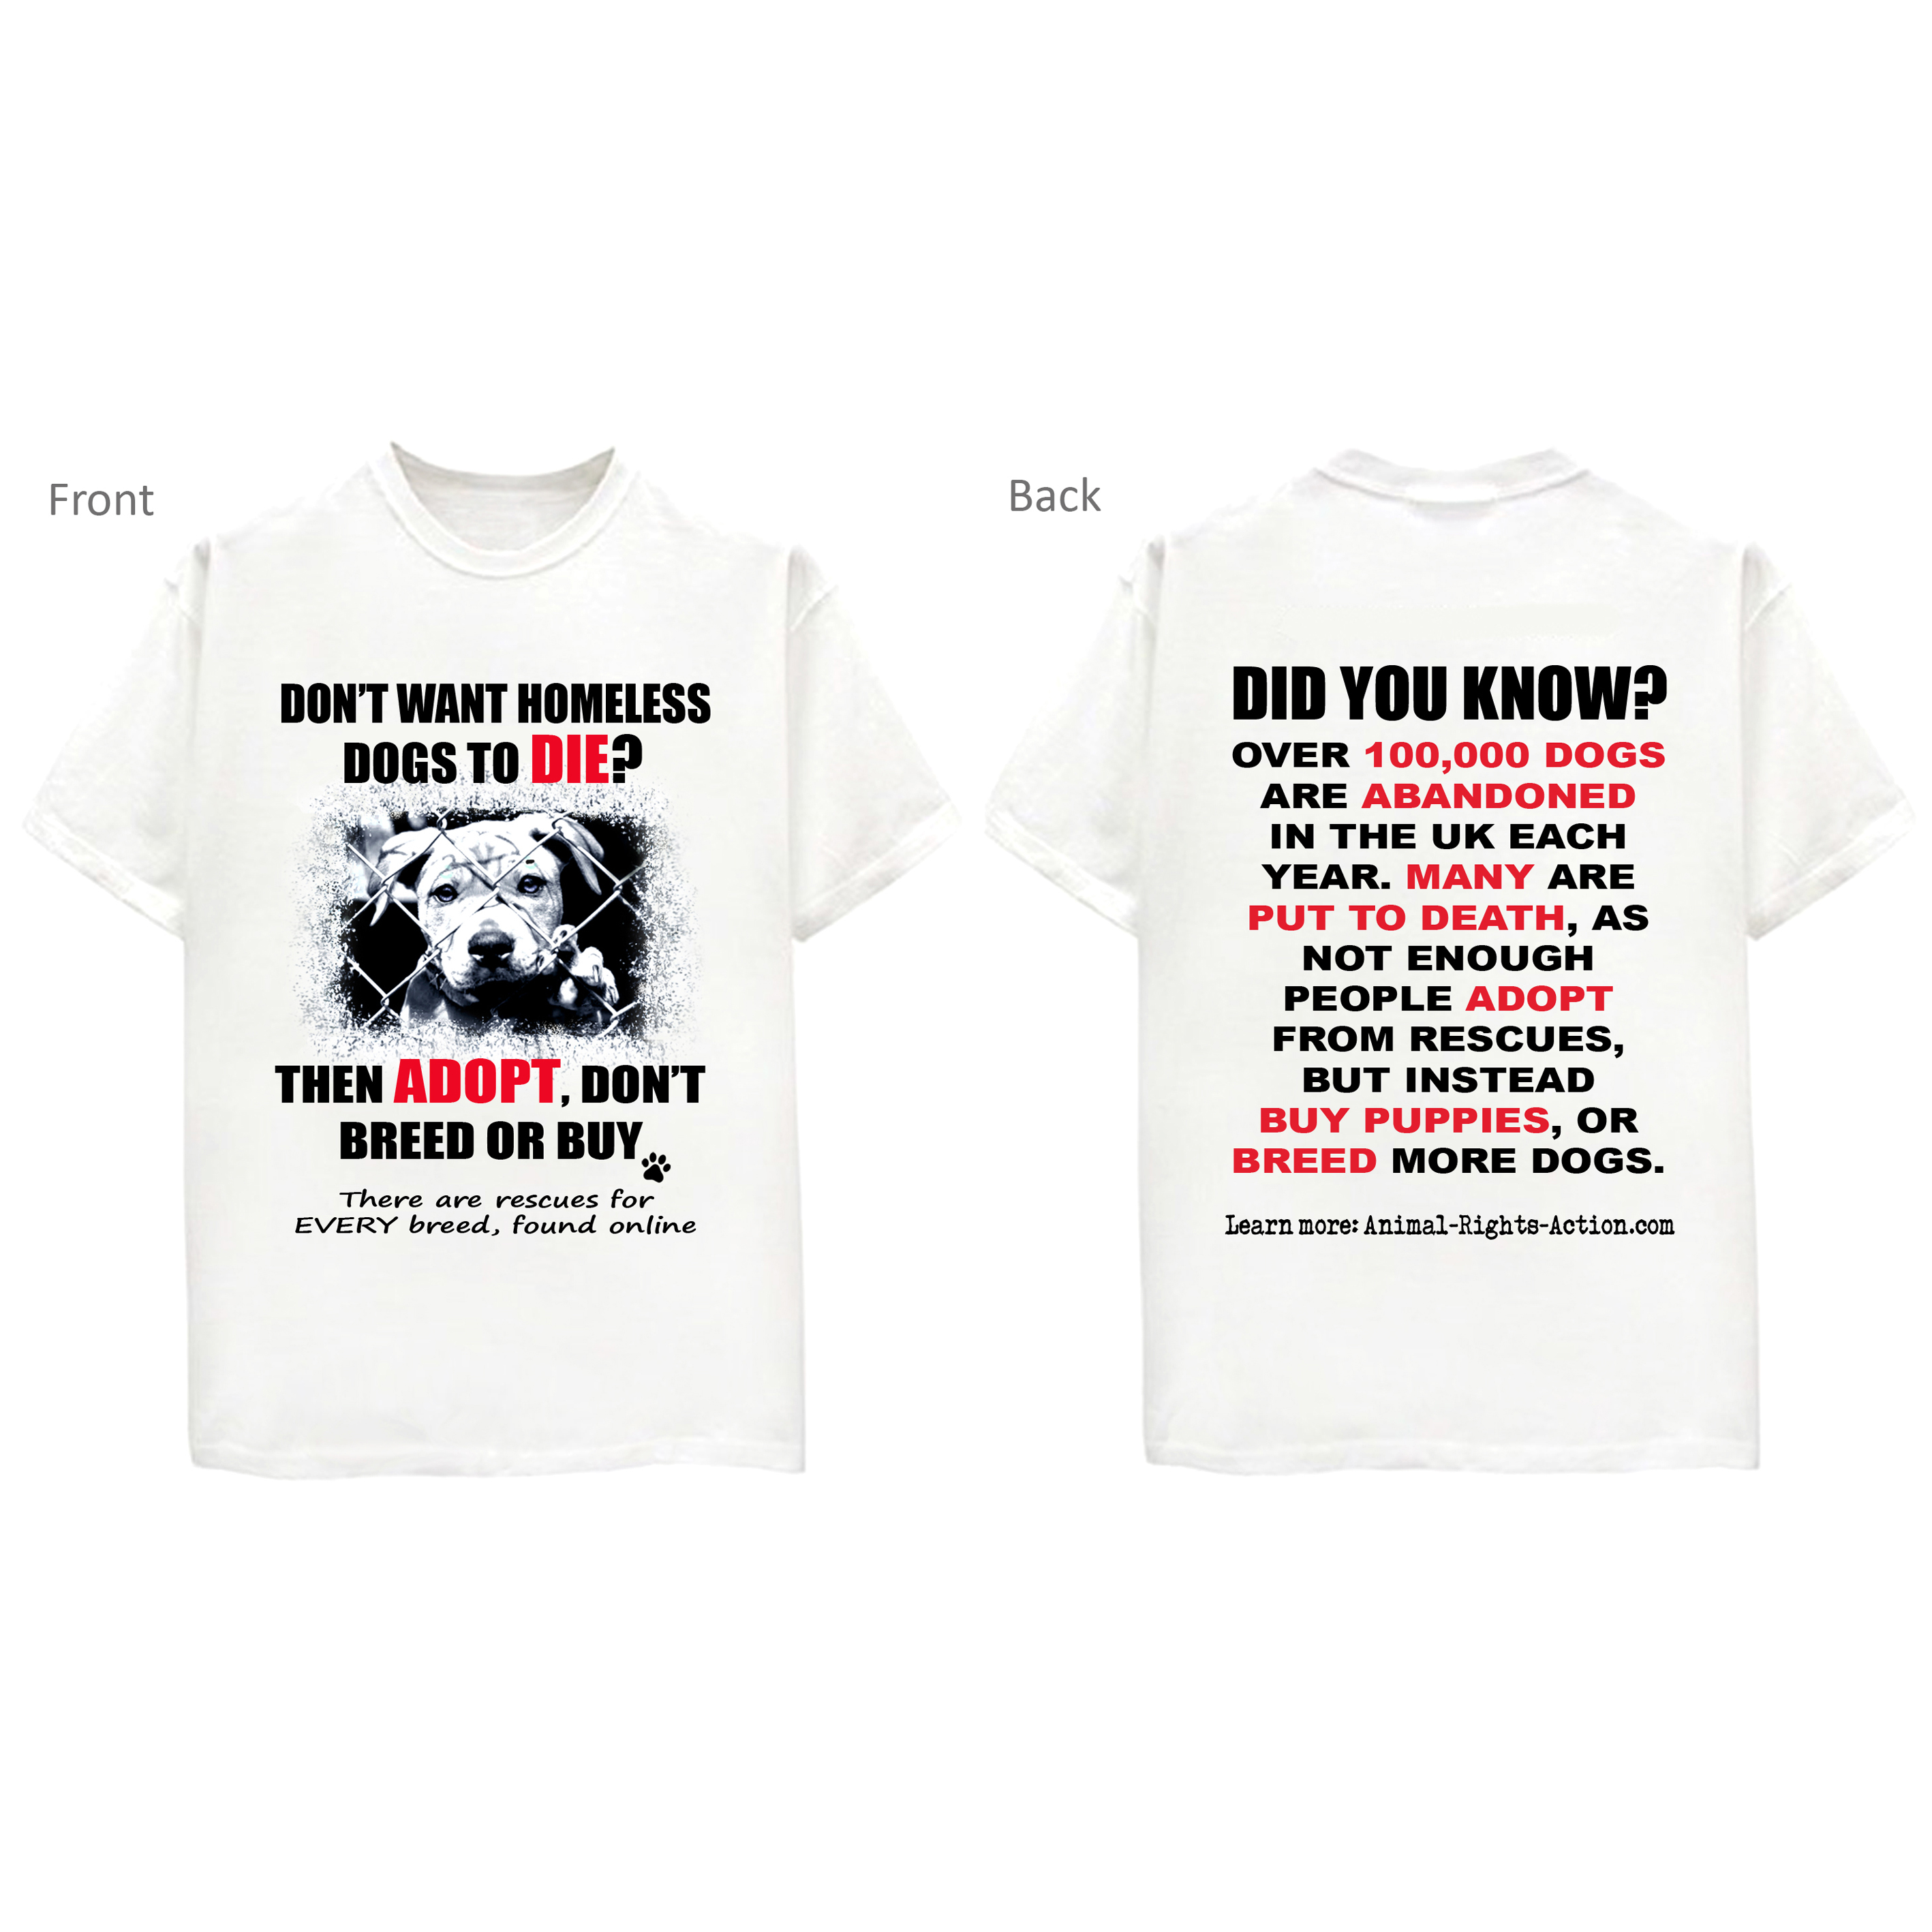 """e8c378d74776 """"Adopt, Don't Breed Or Buy"""" Animal Rescue T-shirt"""